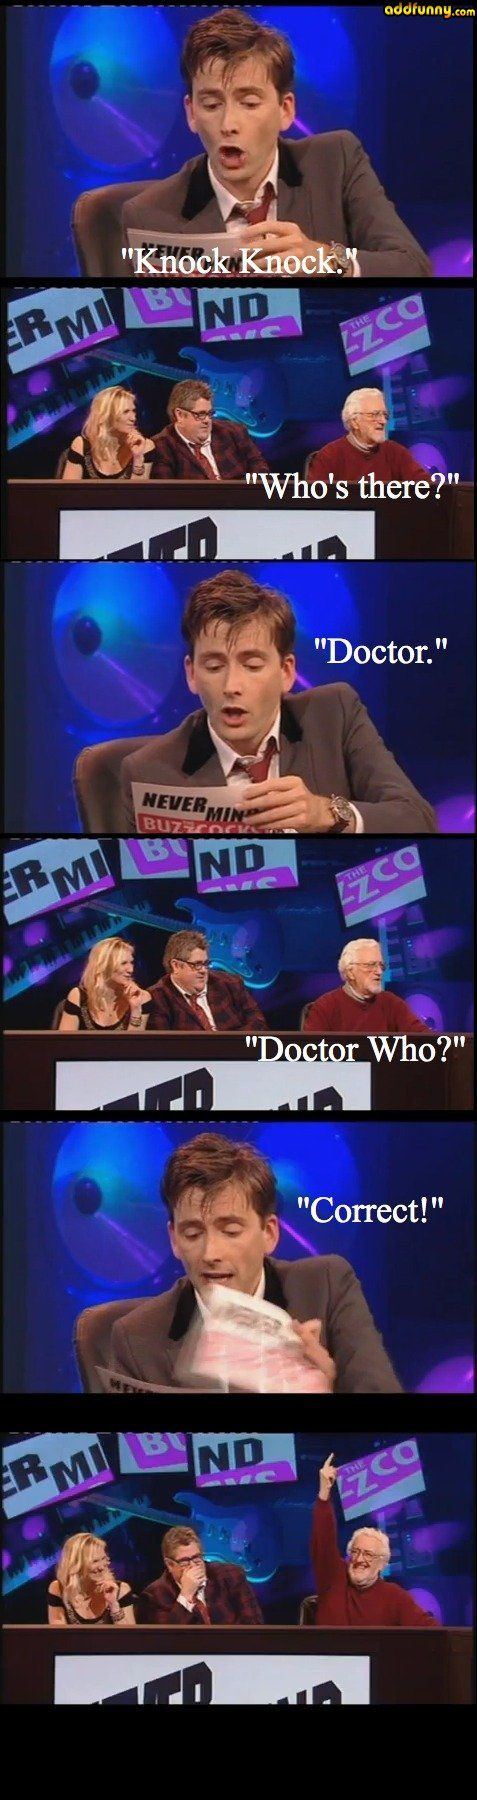 "*This is from a hilarious British TV show David Tenant hosted called ""Never Mind the Buzzcocks"". (It's A  British slang word btw) You can see the full clip on YouTube by searching either that title, or David Tenant then scrolling through tons of results :D if you're a Dr who or David Tenant fan it's worth the look :) BTW I get new people re-pinning this one pin nearly every day. My notifications panel says 48+ people pinned it :D cool"